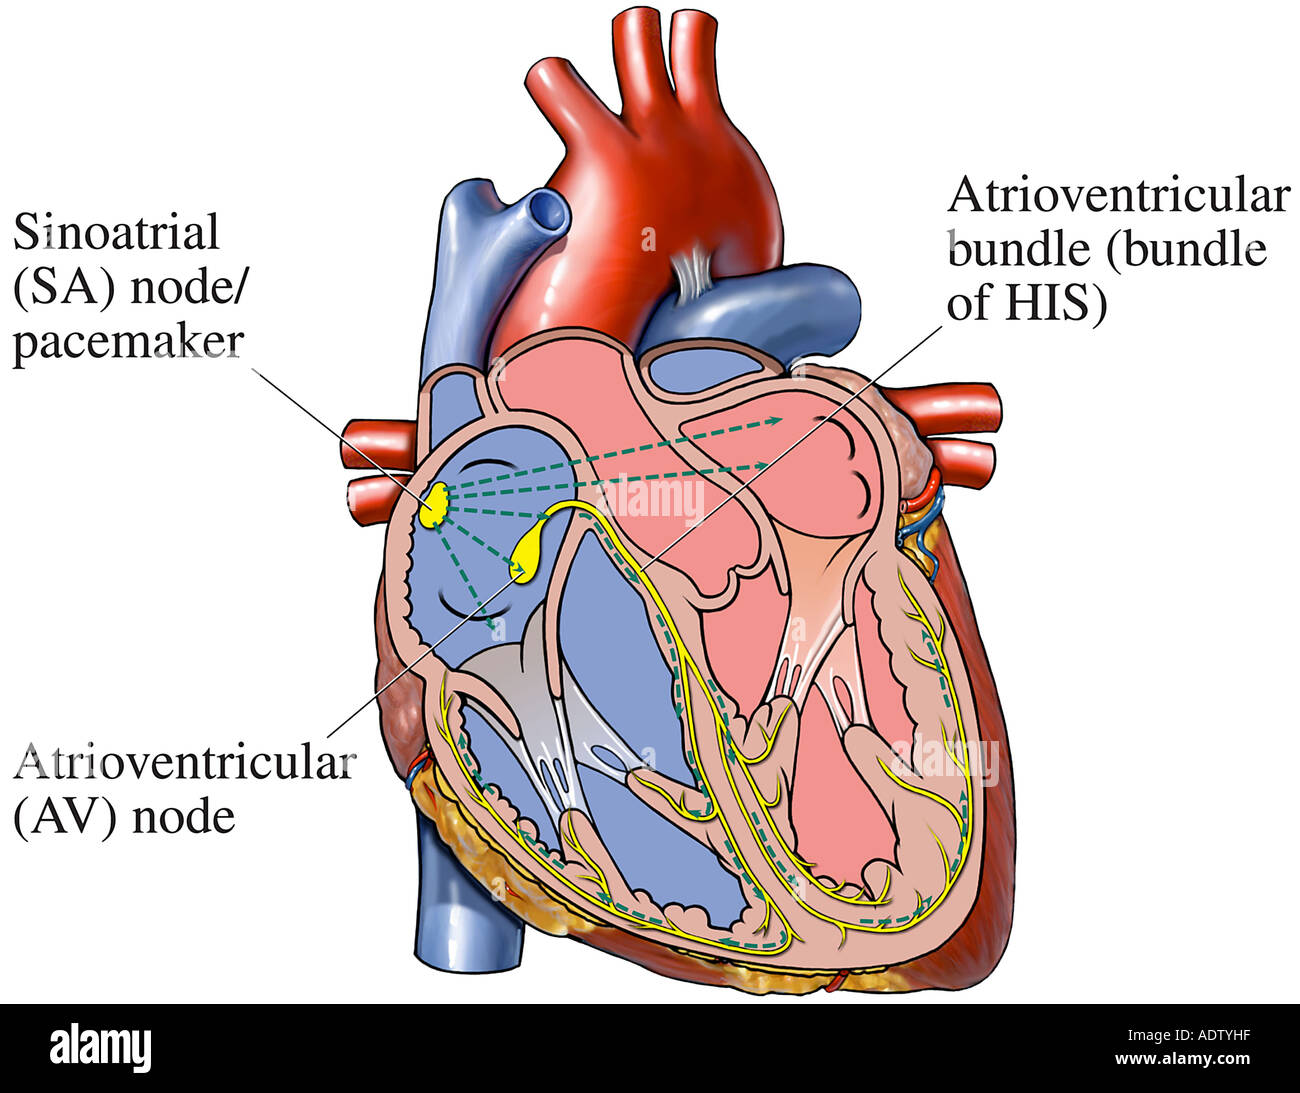 Cardiac Conduction System Of The Heart Stock Photo 7710814 Alamy